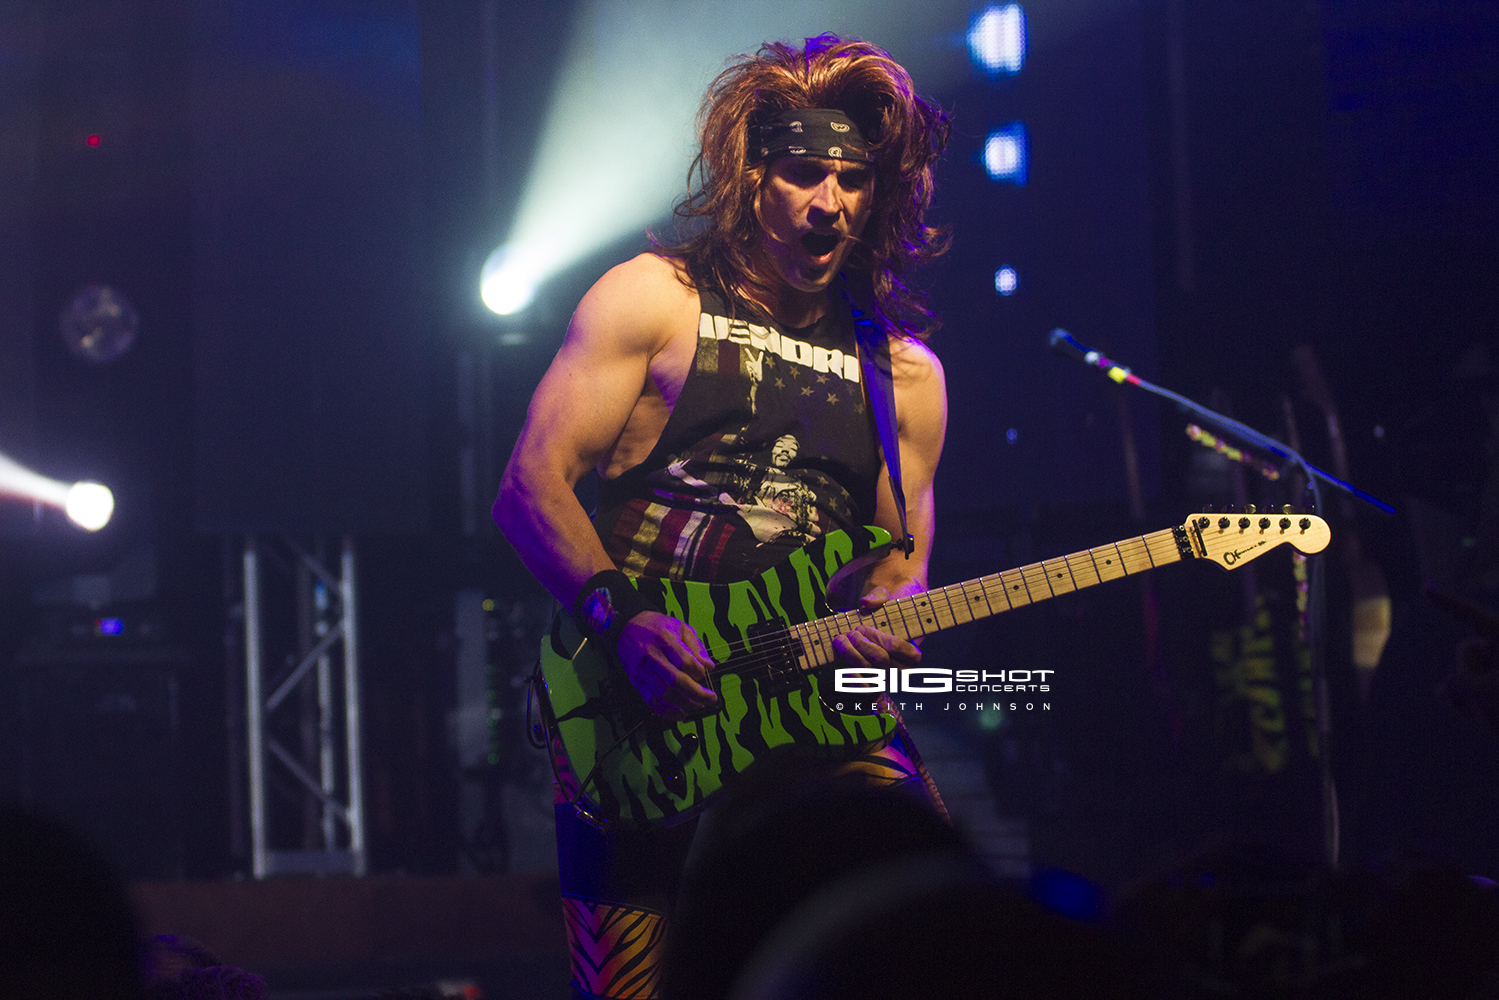 Satchel makes his six string scream in Fort Lauderdale